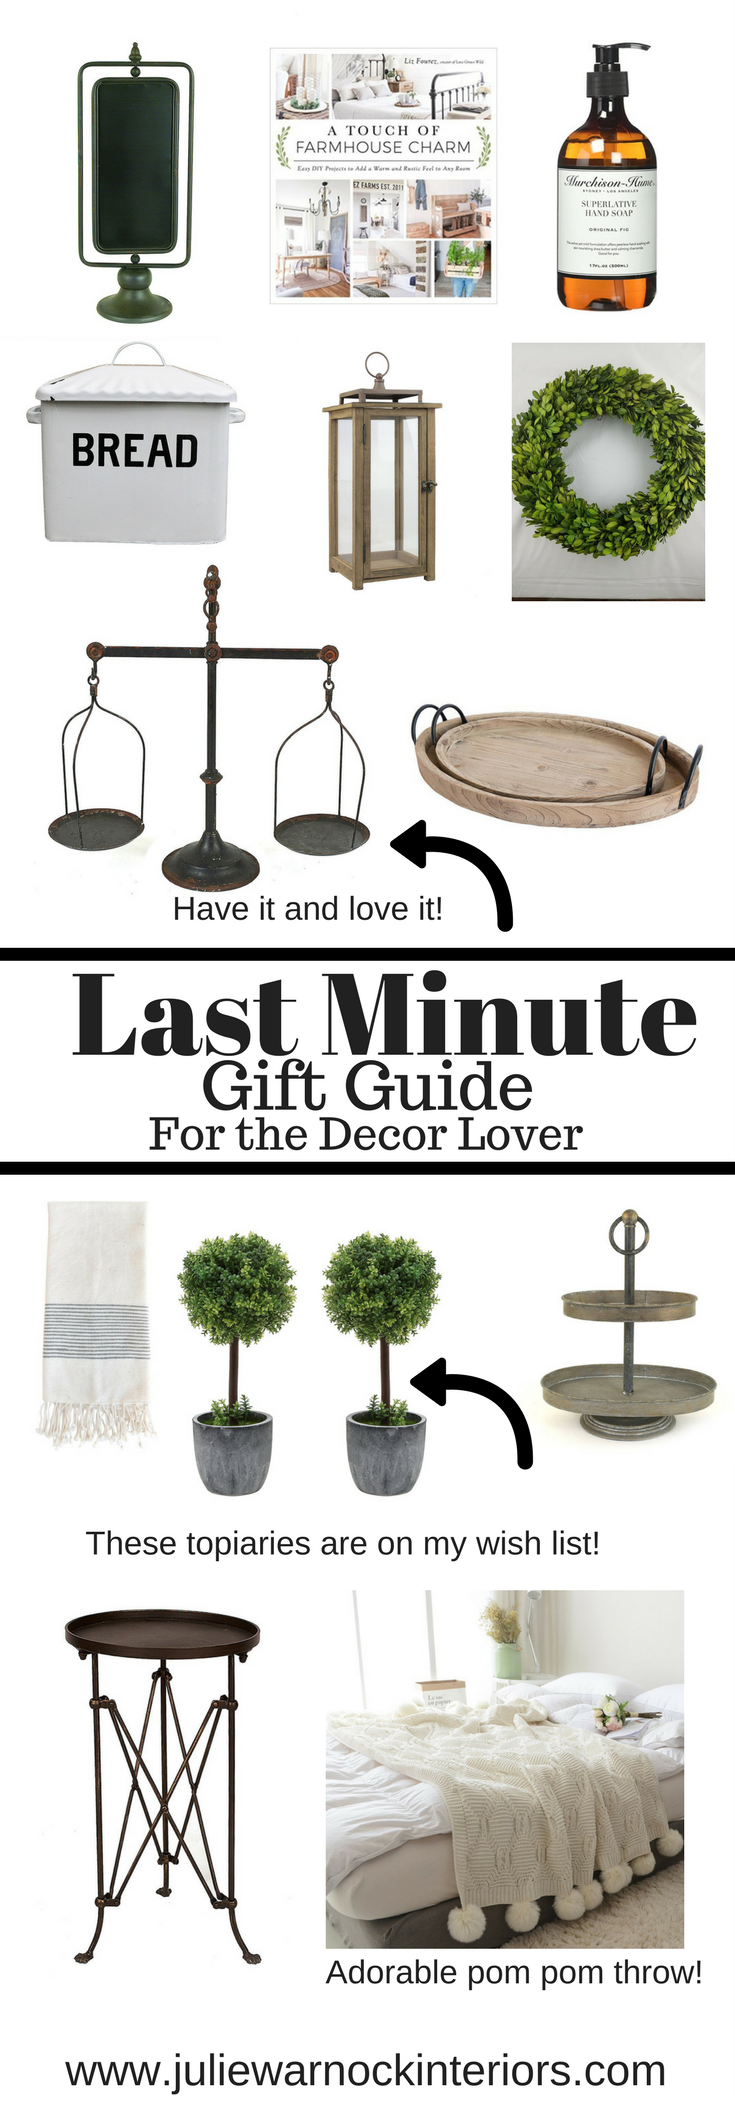 Last Minute Gift Guide for the Decor Lover